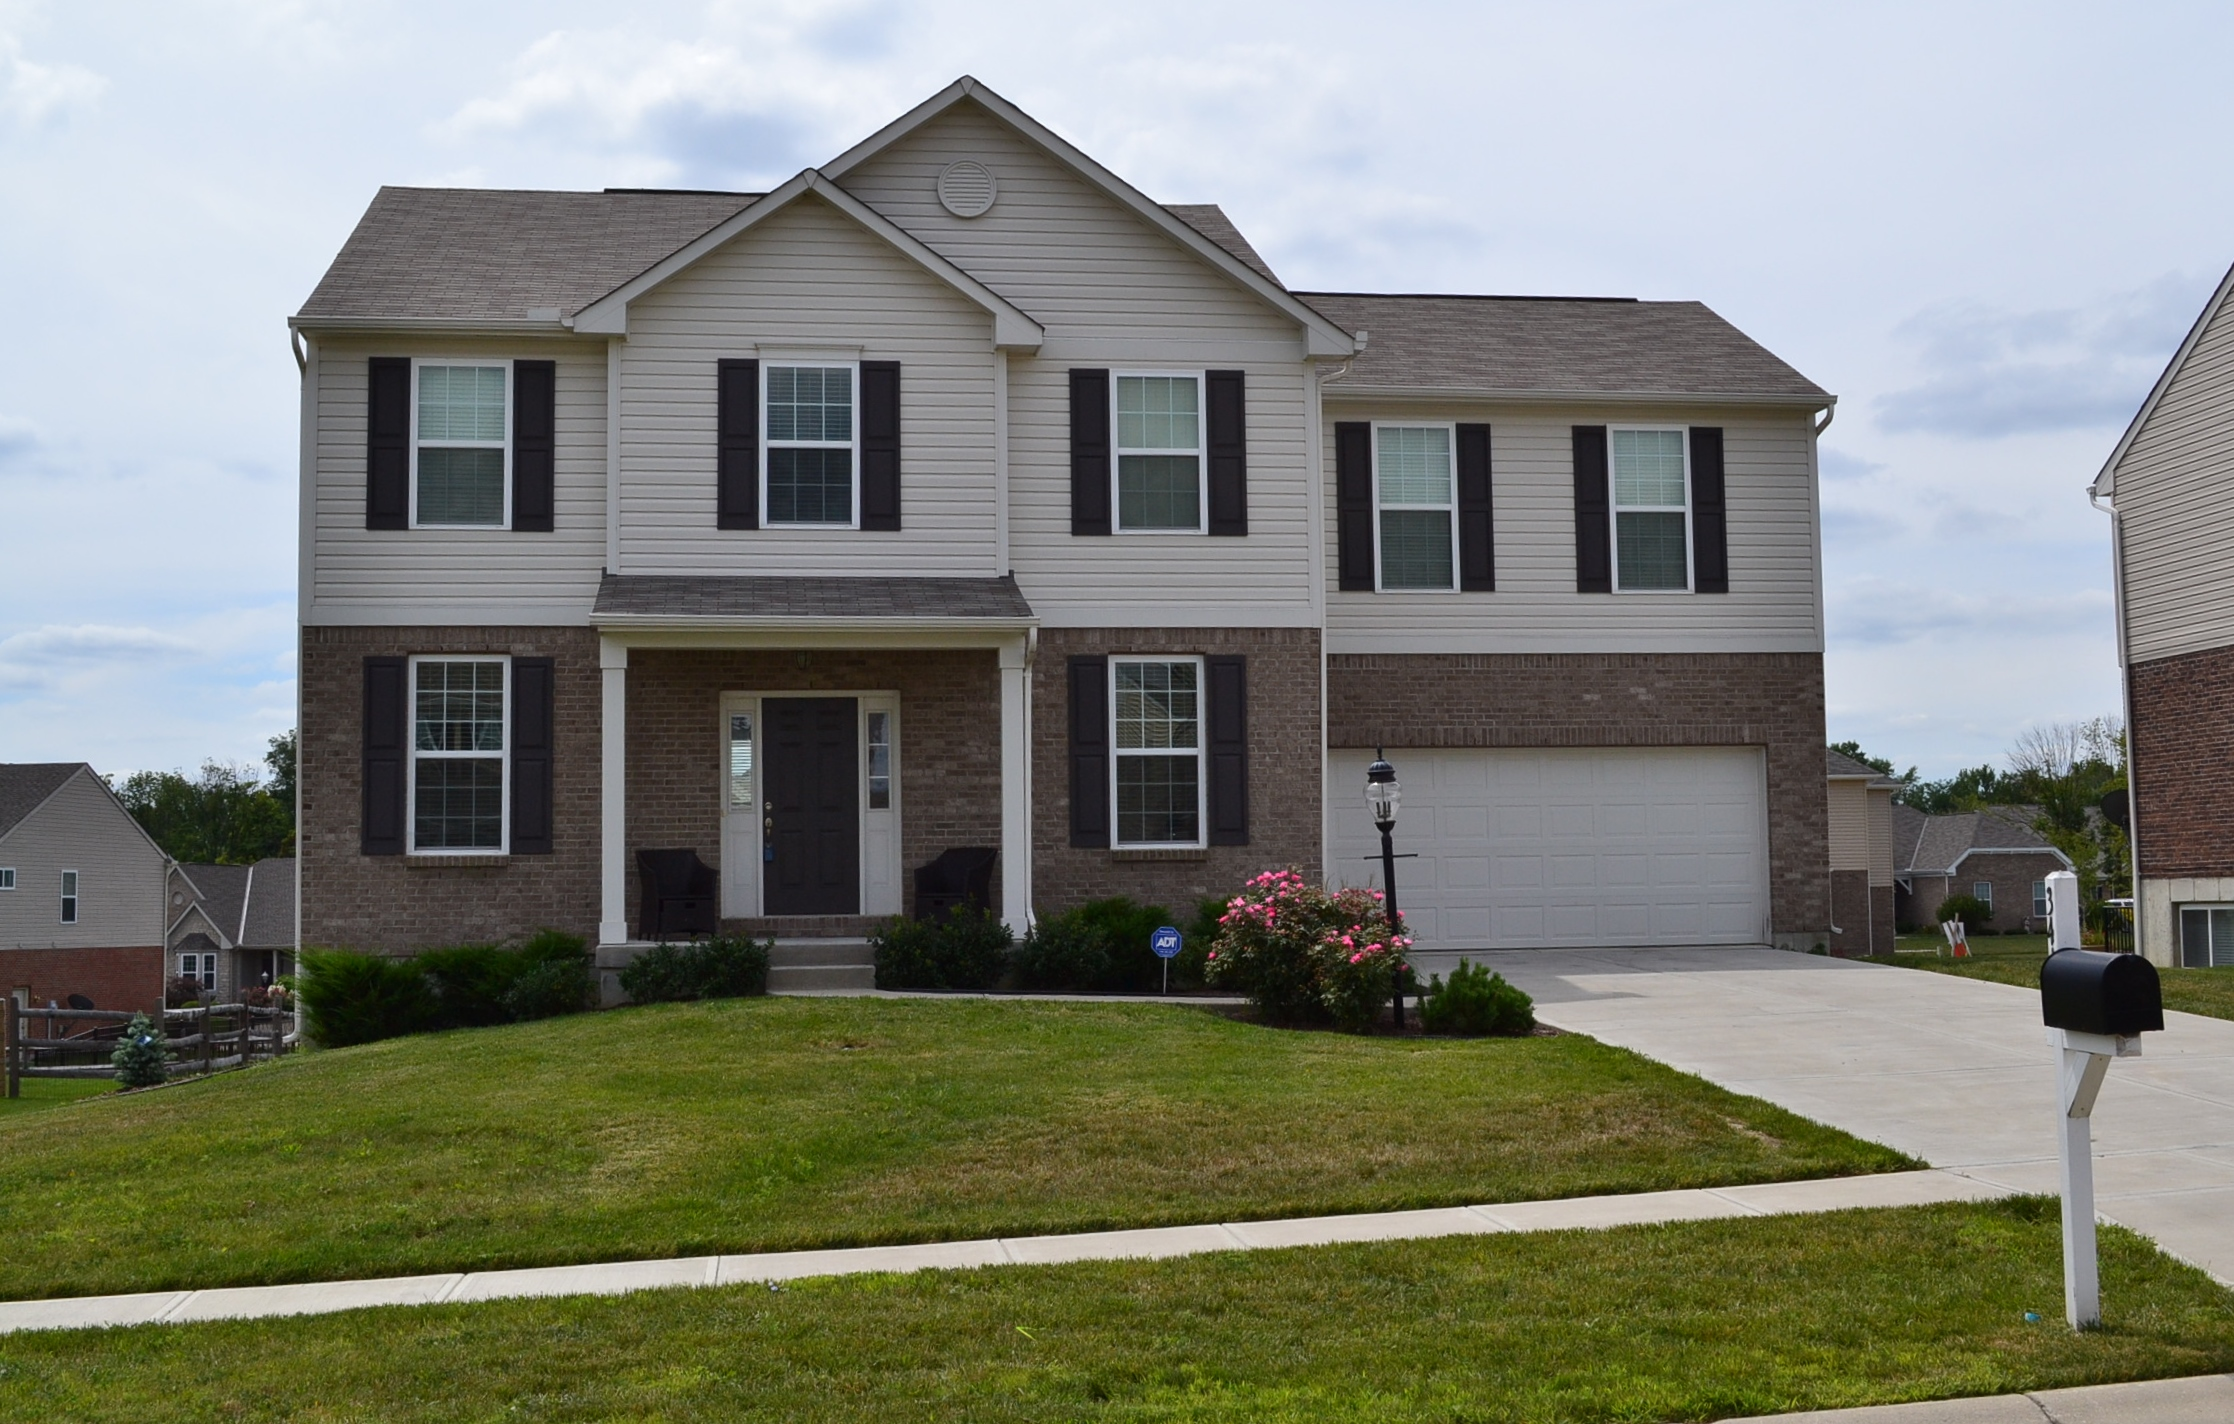 3443 Wood Court Fairfield Township Ohio - Woodberry Subdivision